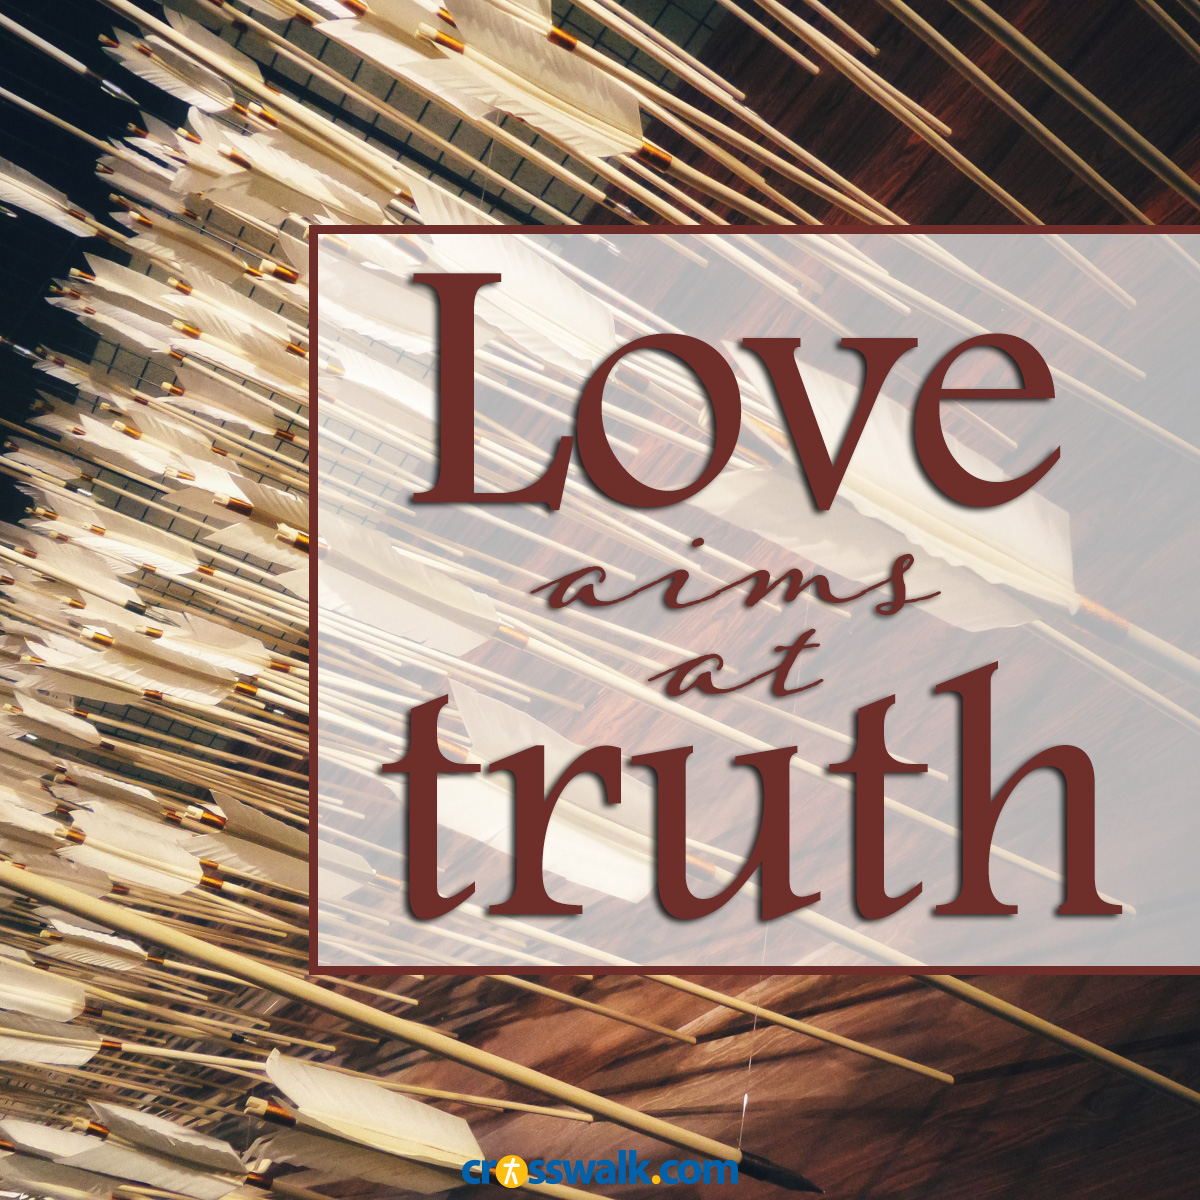 love aims at truth